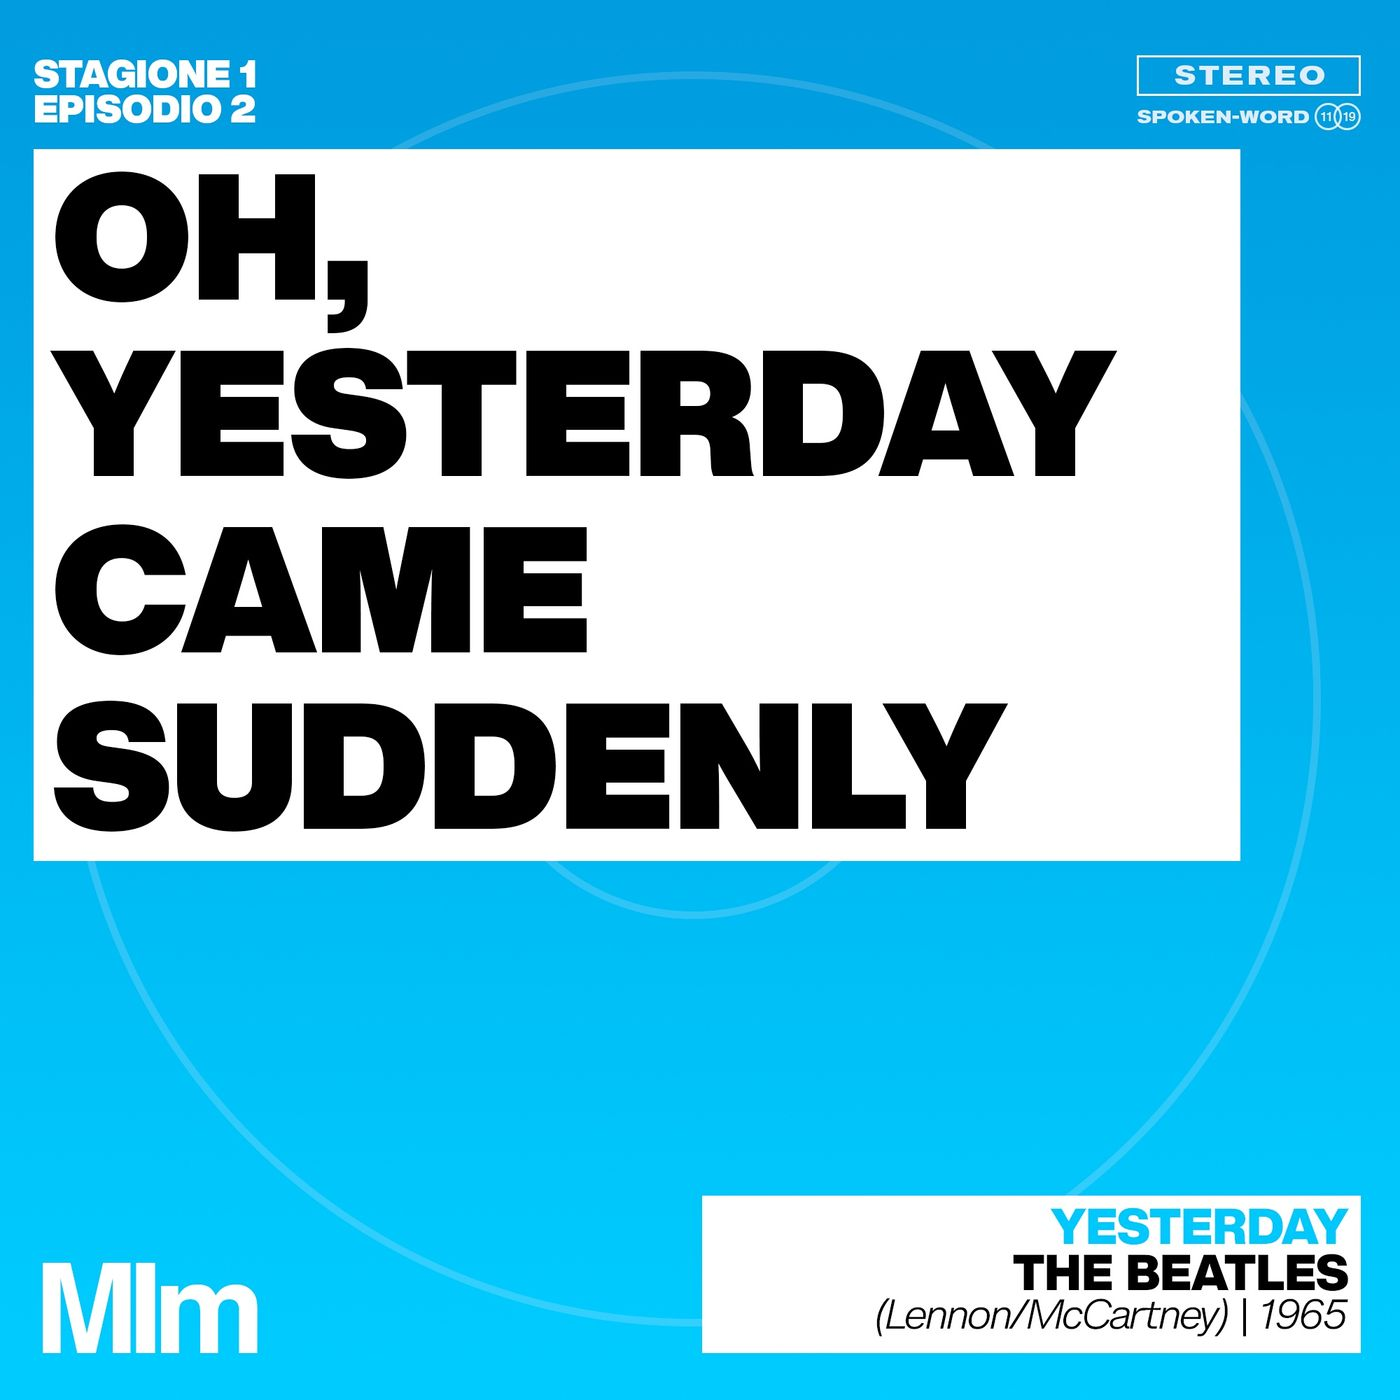 #2: Oh, Yesterday came suddenly (YESTERDAY - The Beatles)